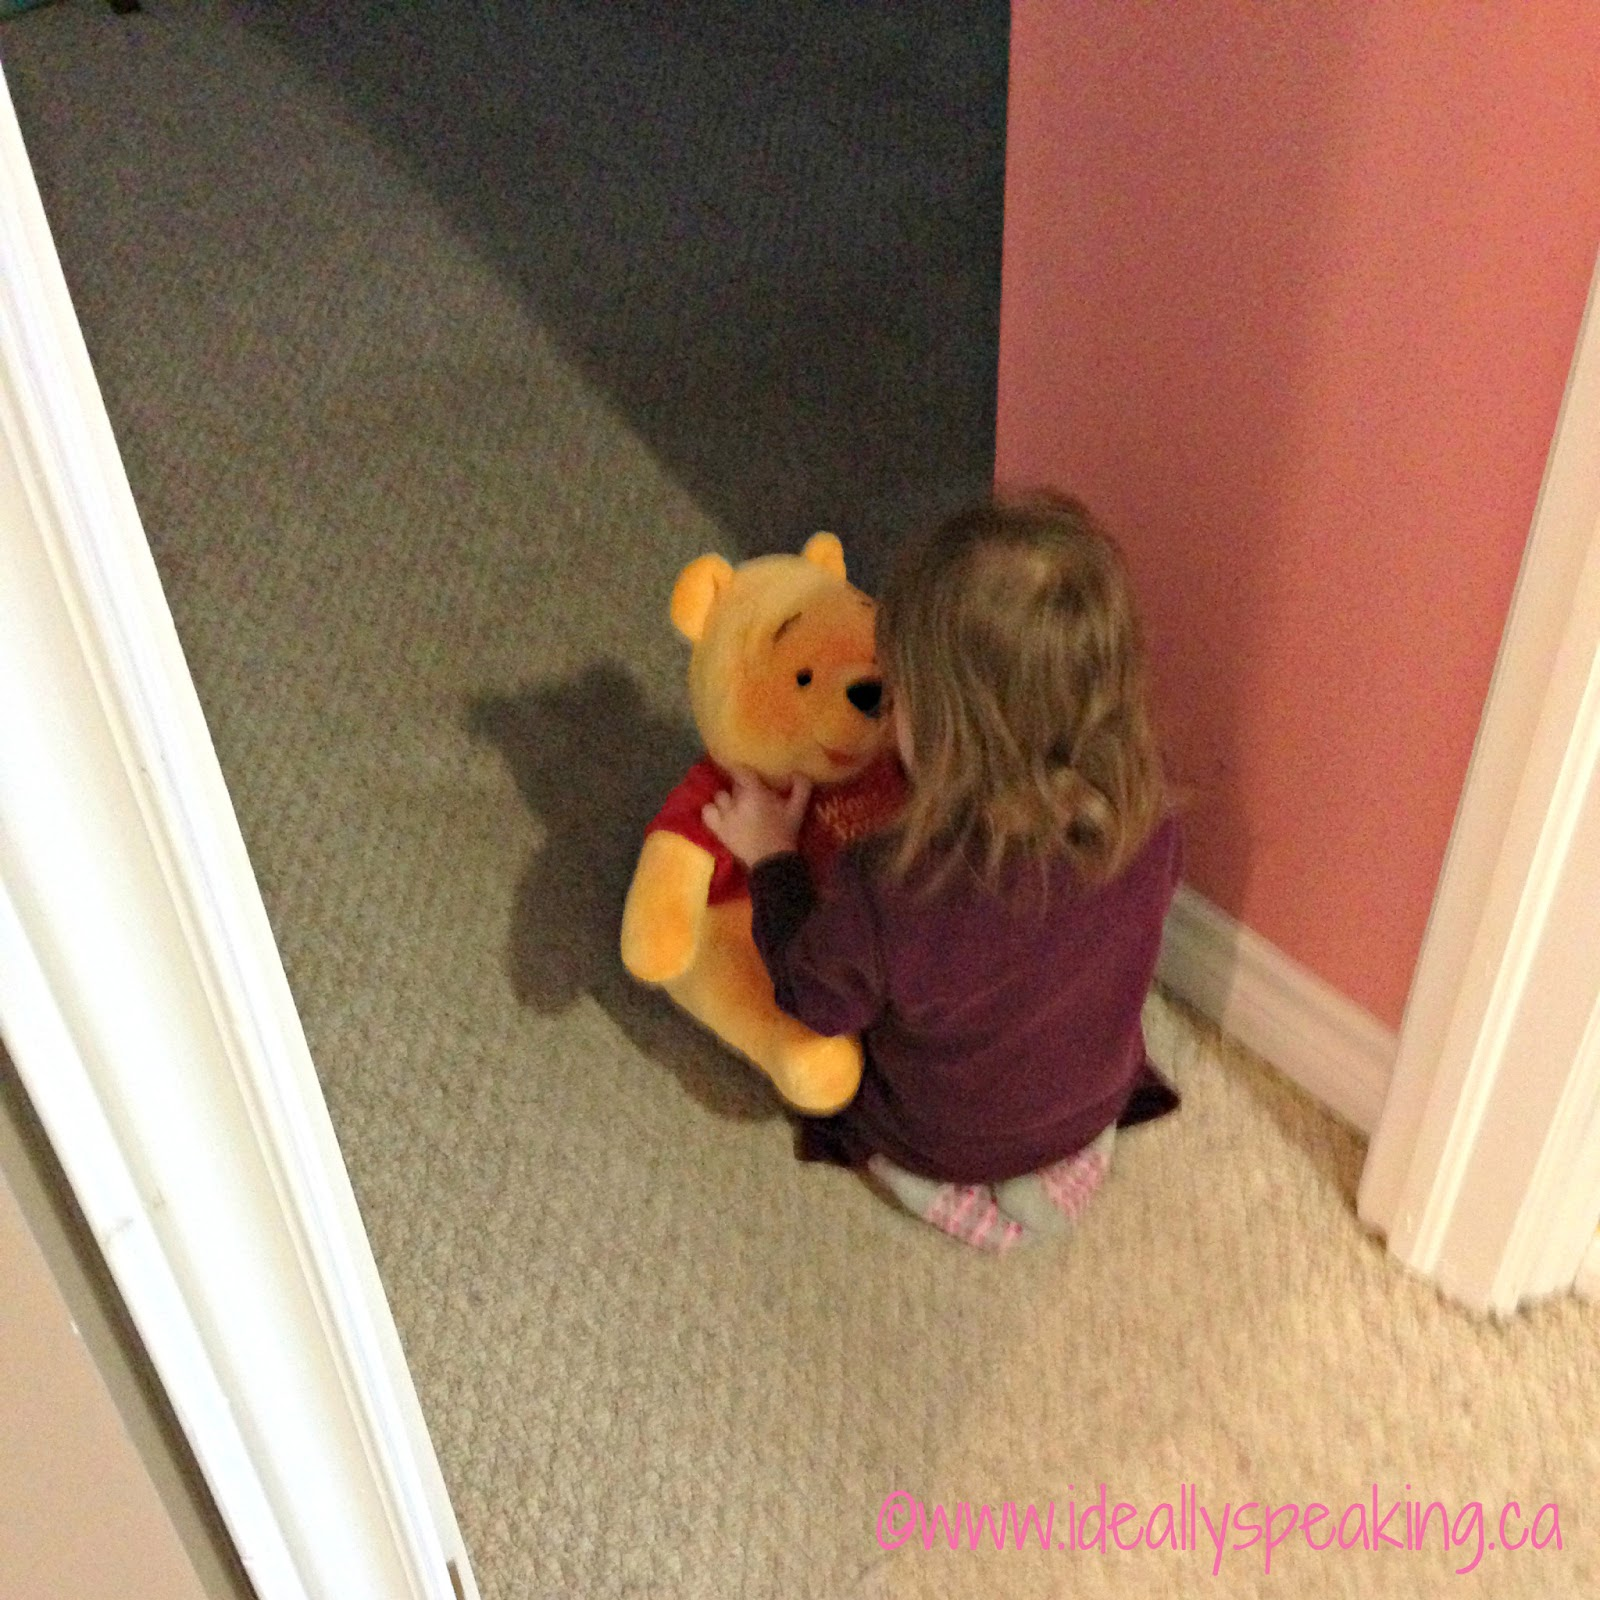 toddler, parenting, parenting a toddler, terrible two's, tantrums, mom blog, canadian mom blog